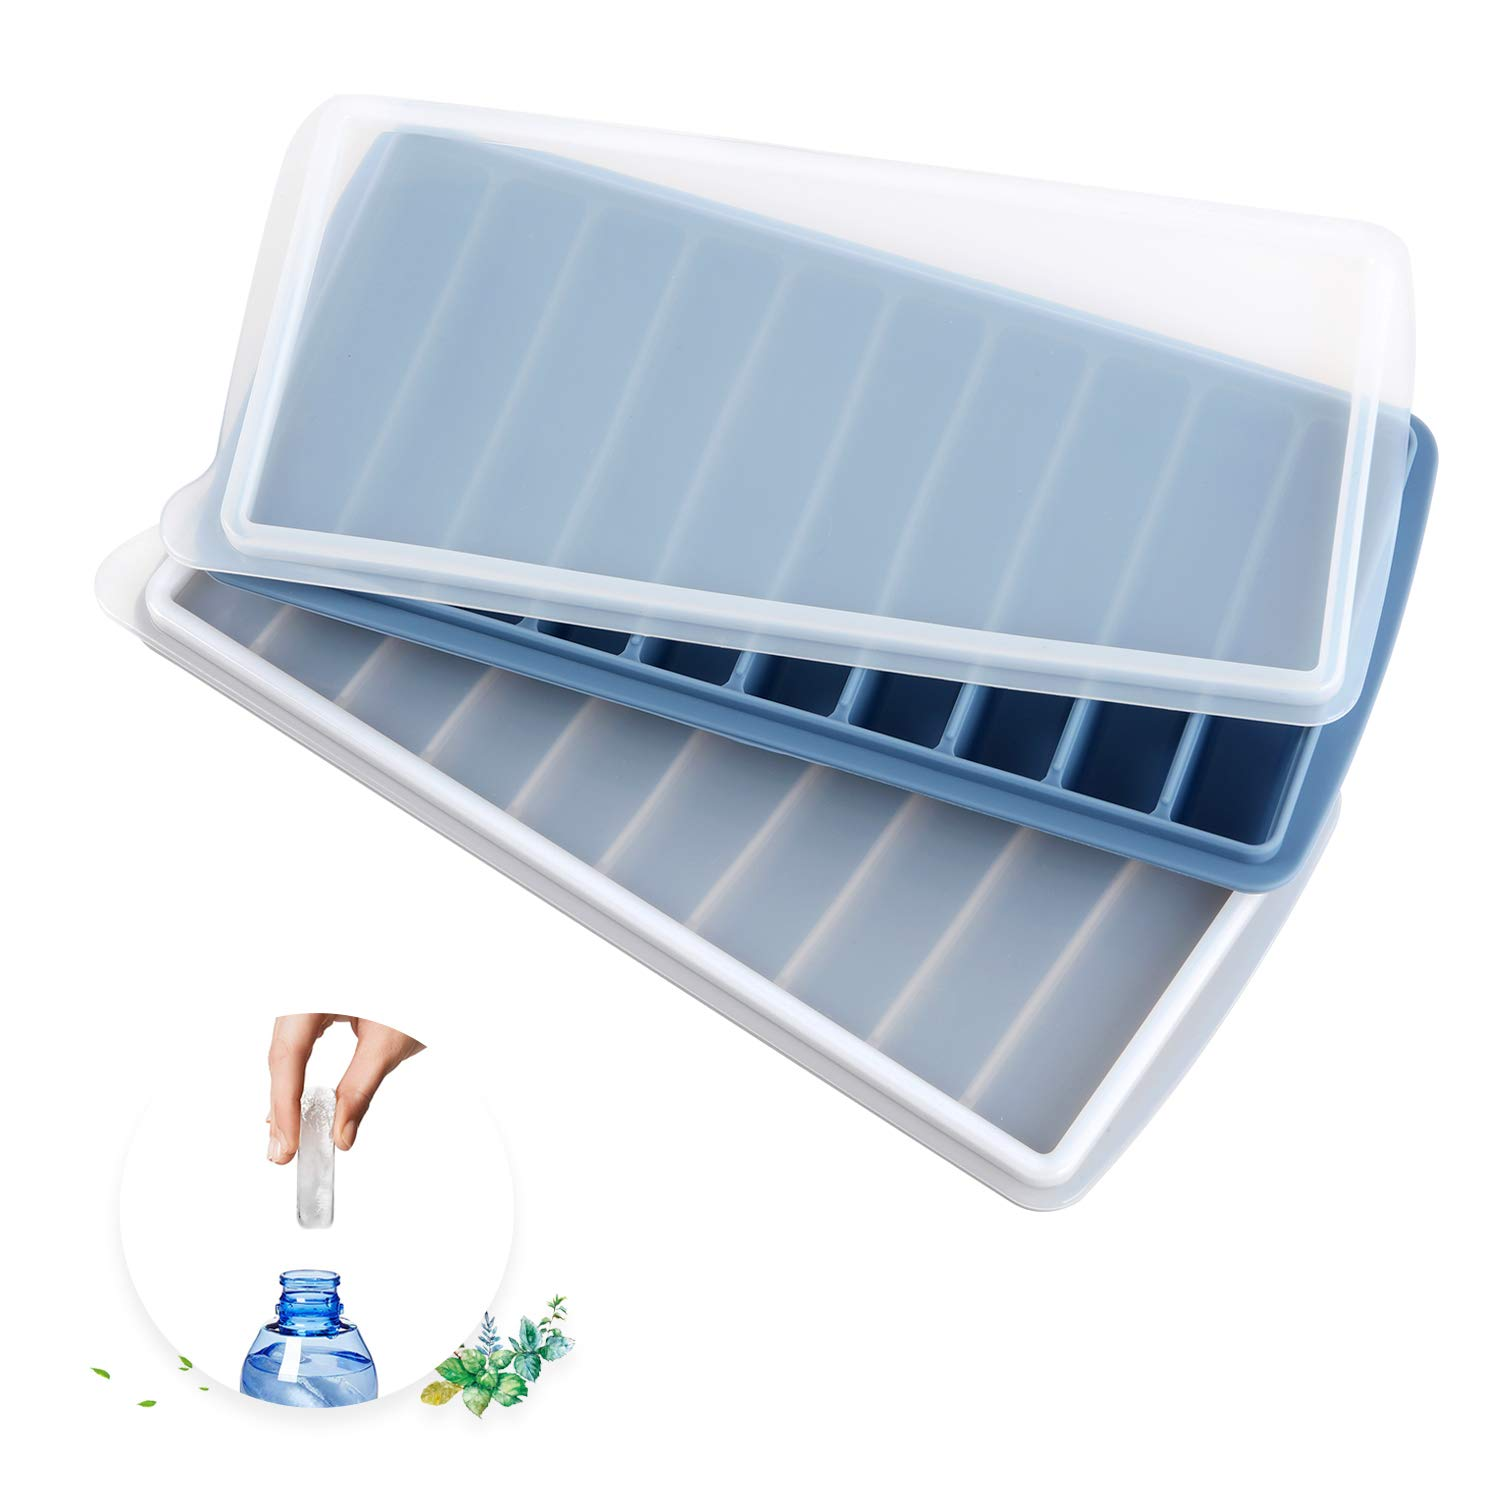 Silicone Narrow Ice Stick Cube Trays with Lids, Easy Push and Pop Out Material, Ideal for Sports and Water Bottles